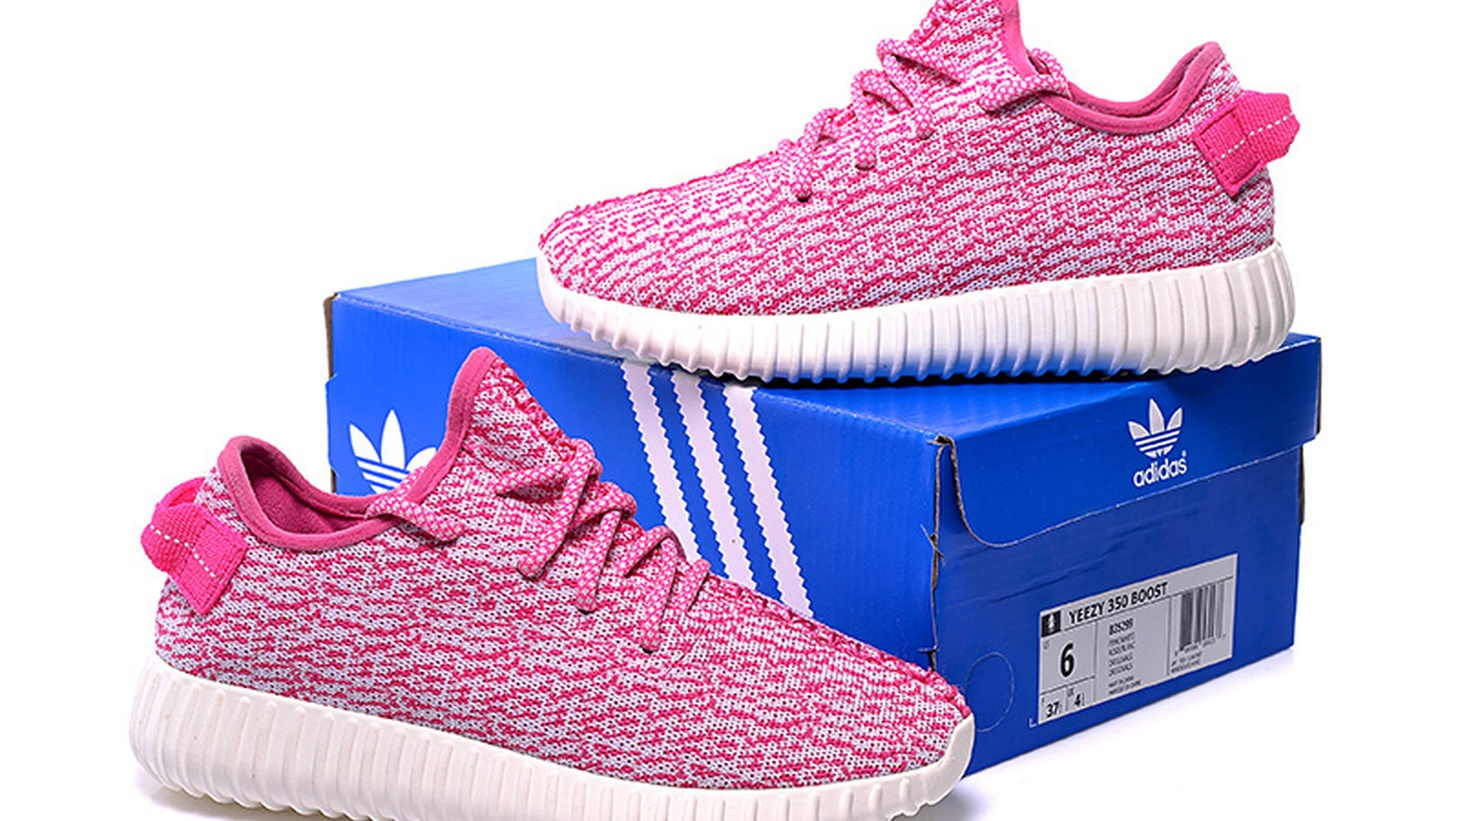 Adidas Yeezy 350 Boost shoes. Kanye West's company Yeezy received a Paycheck Protection Program loan during the coronavirus pandemic.